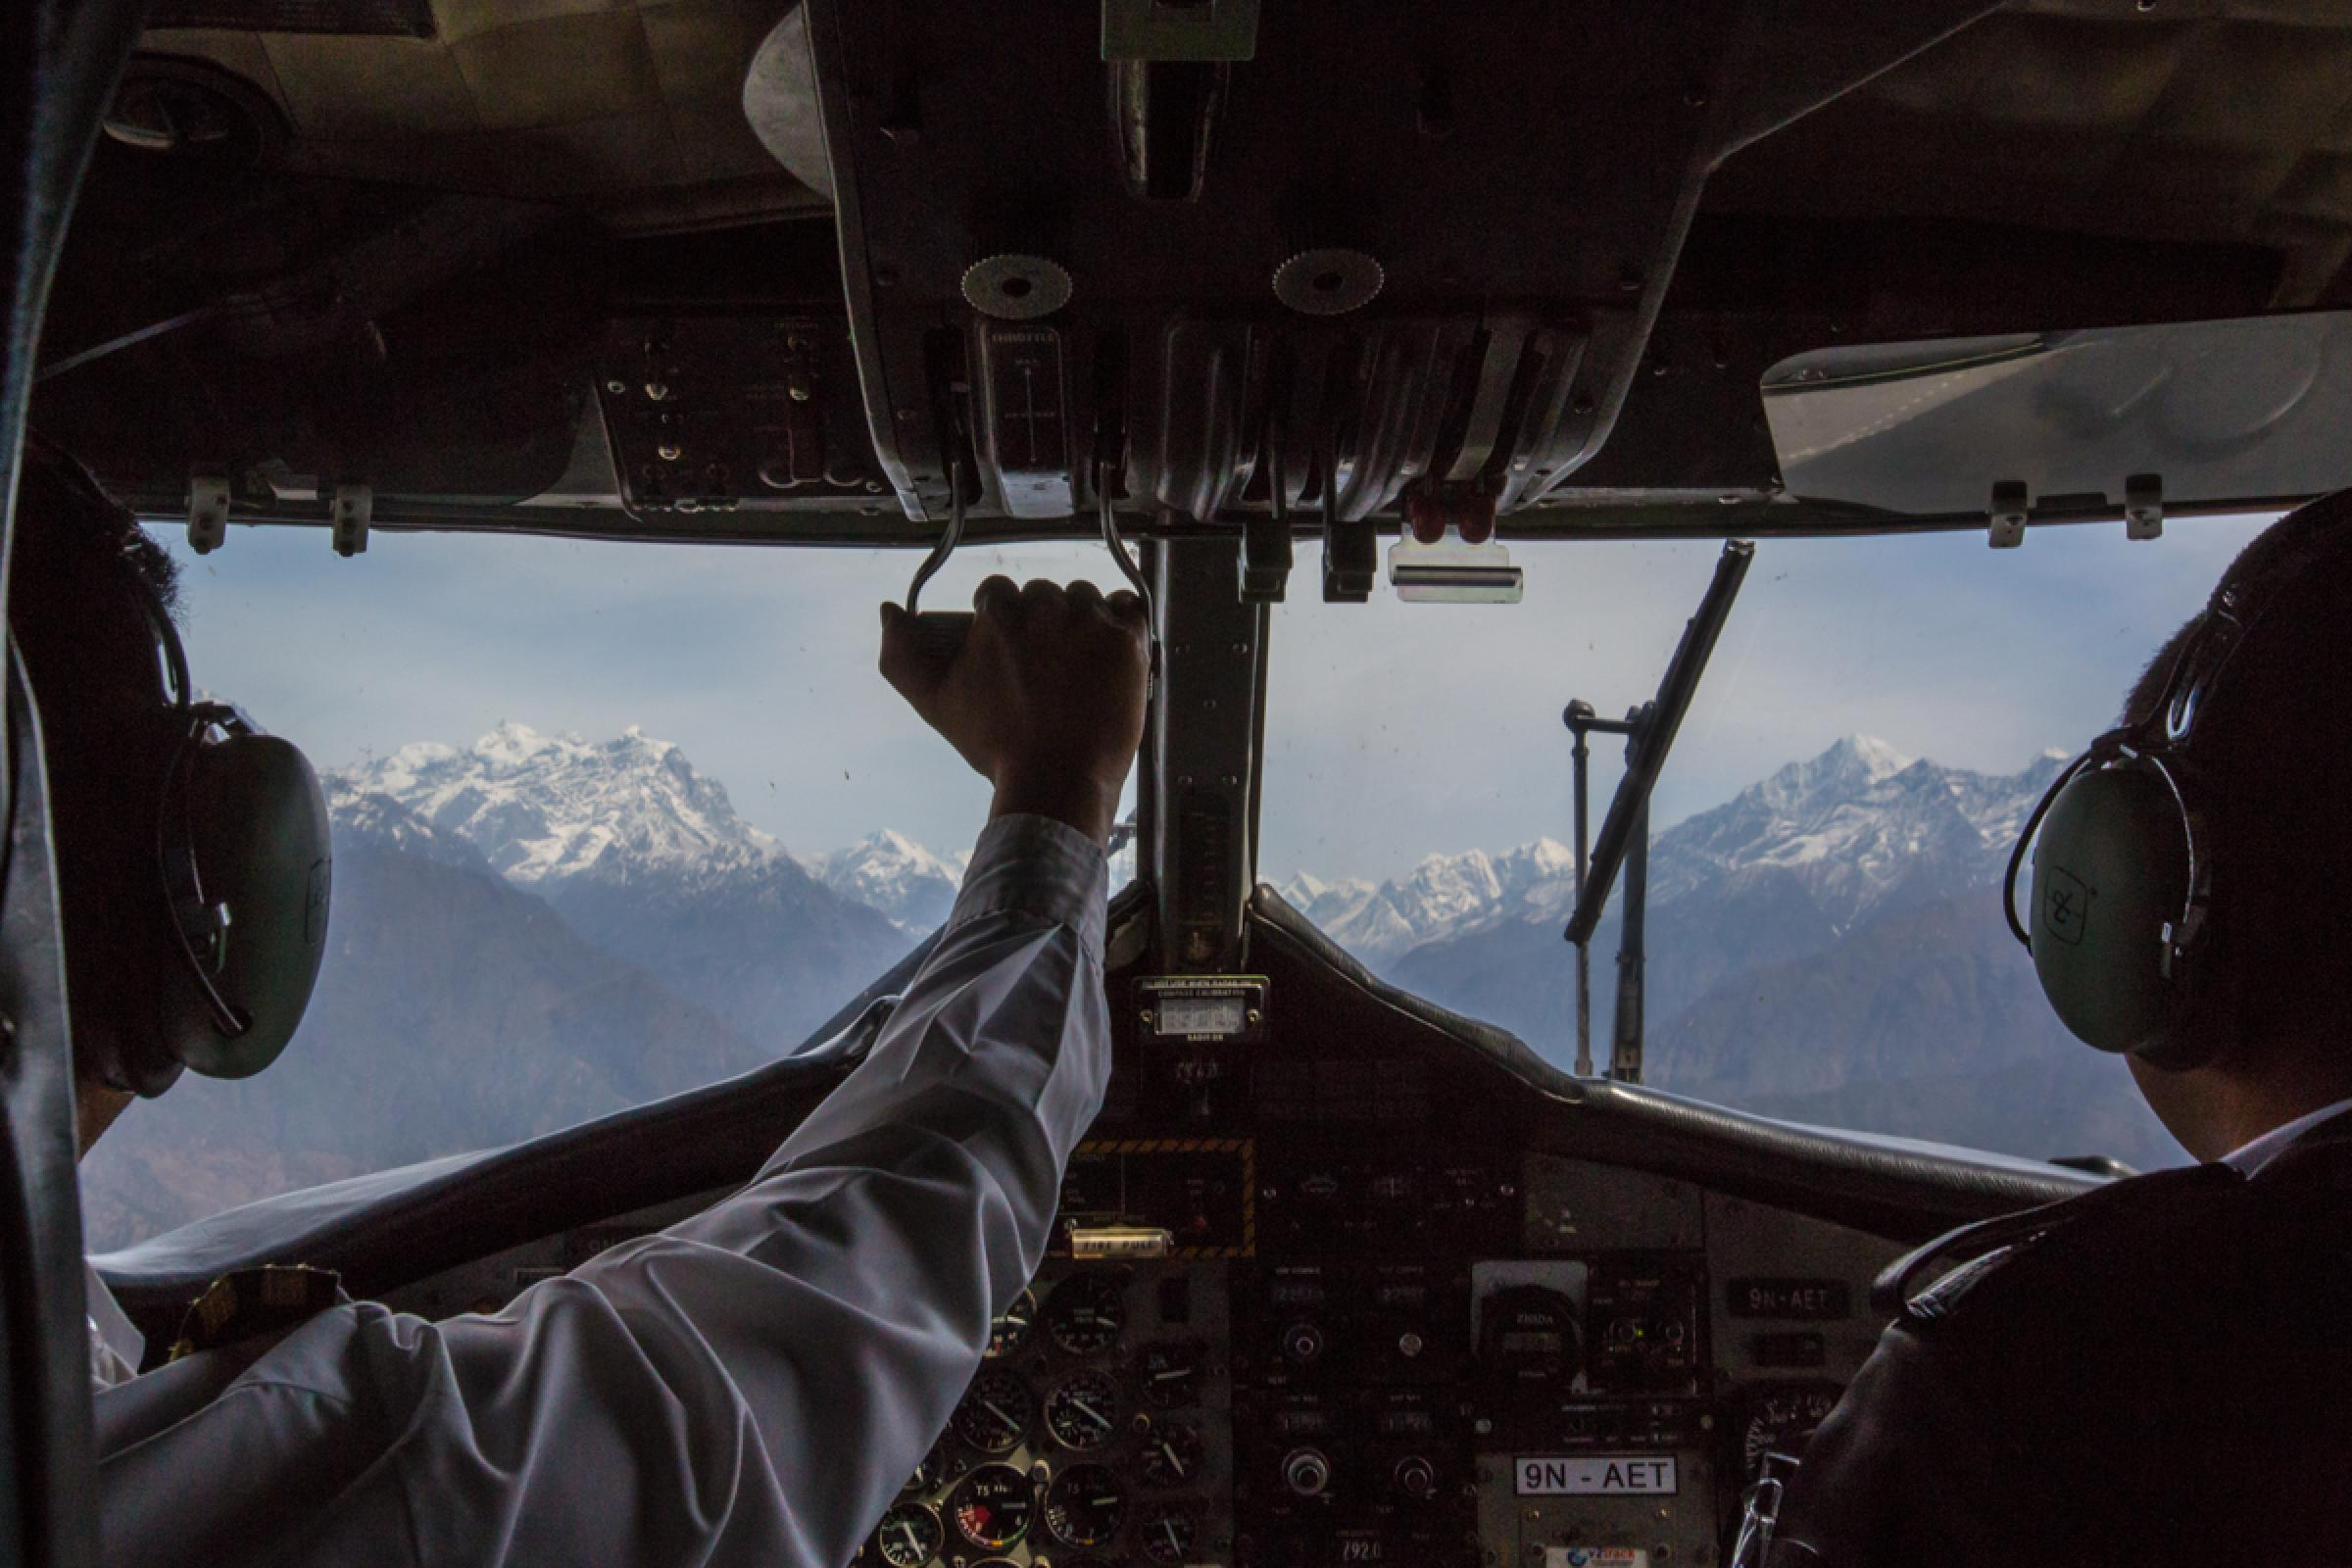 Flight to Lukla (9,380 ft/2,860 m) & trek to Monjo (9,301 ft/2,835 m)